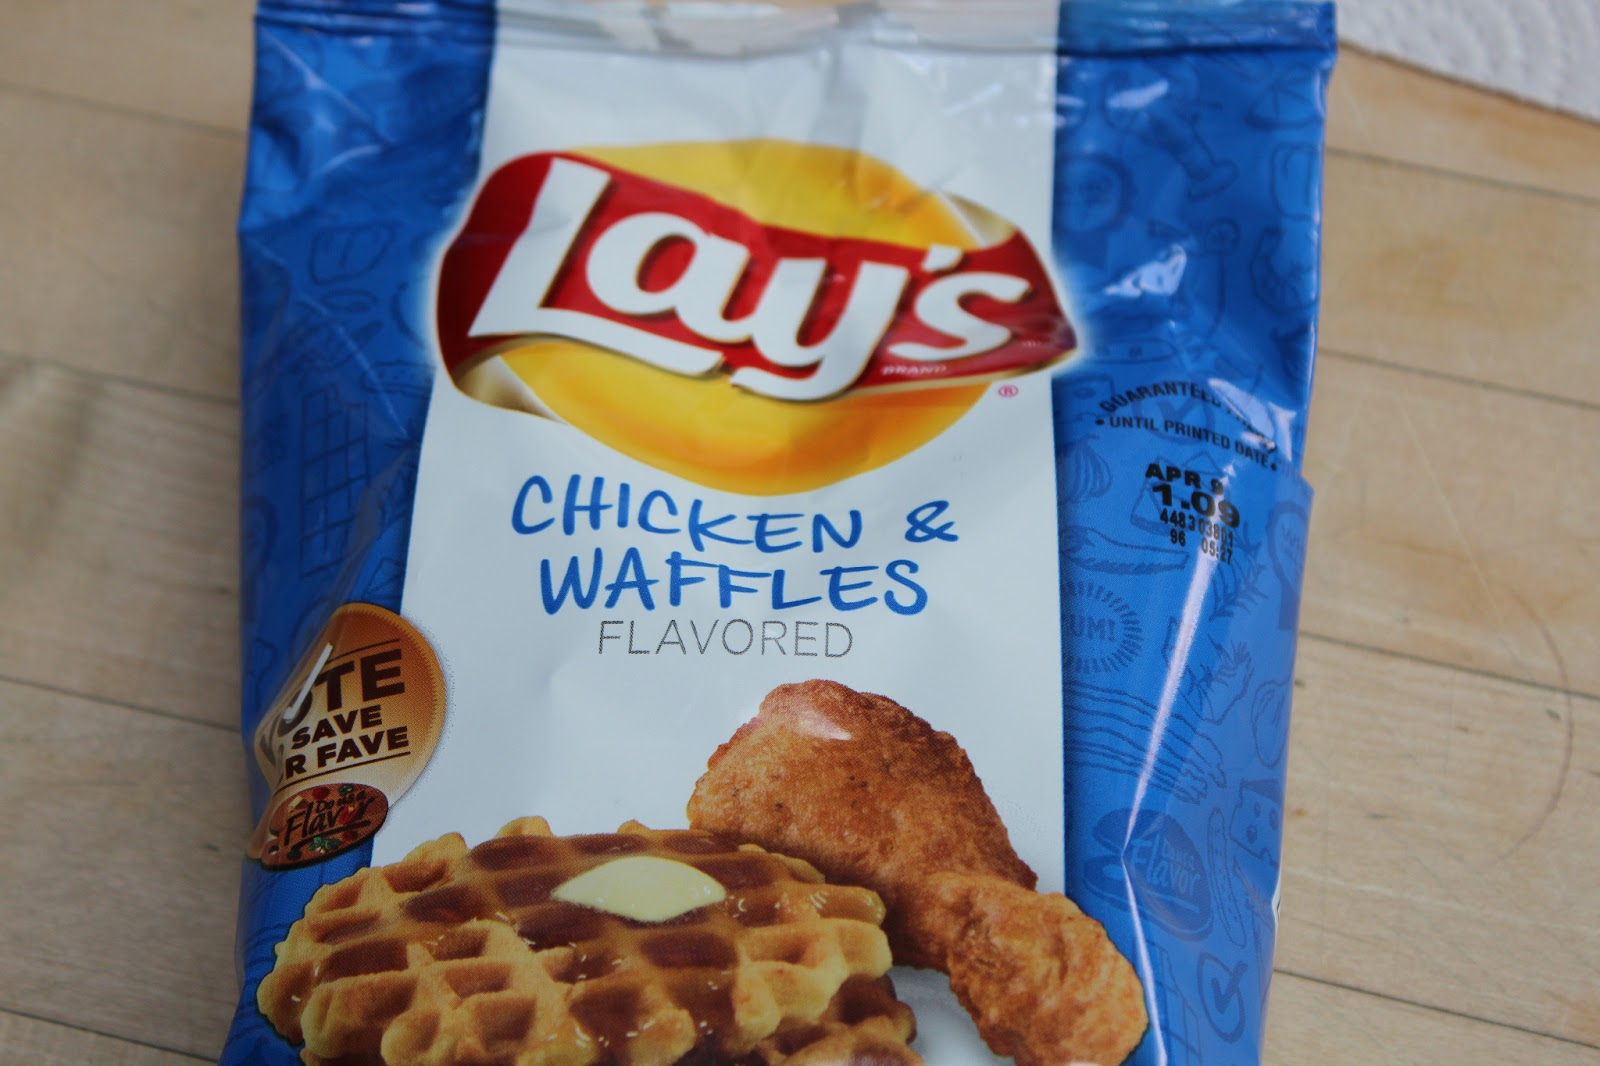 Fried Chicken And Waffles Chips Chicken & waffles chips